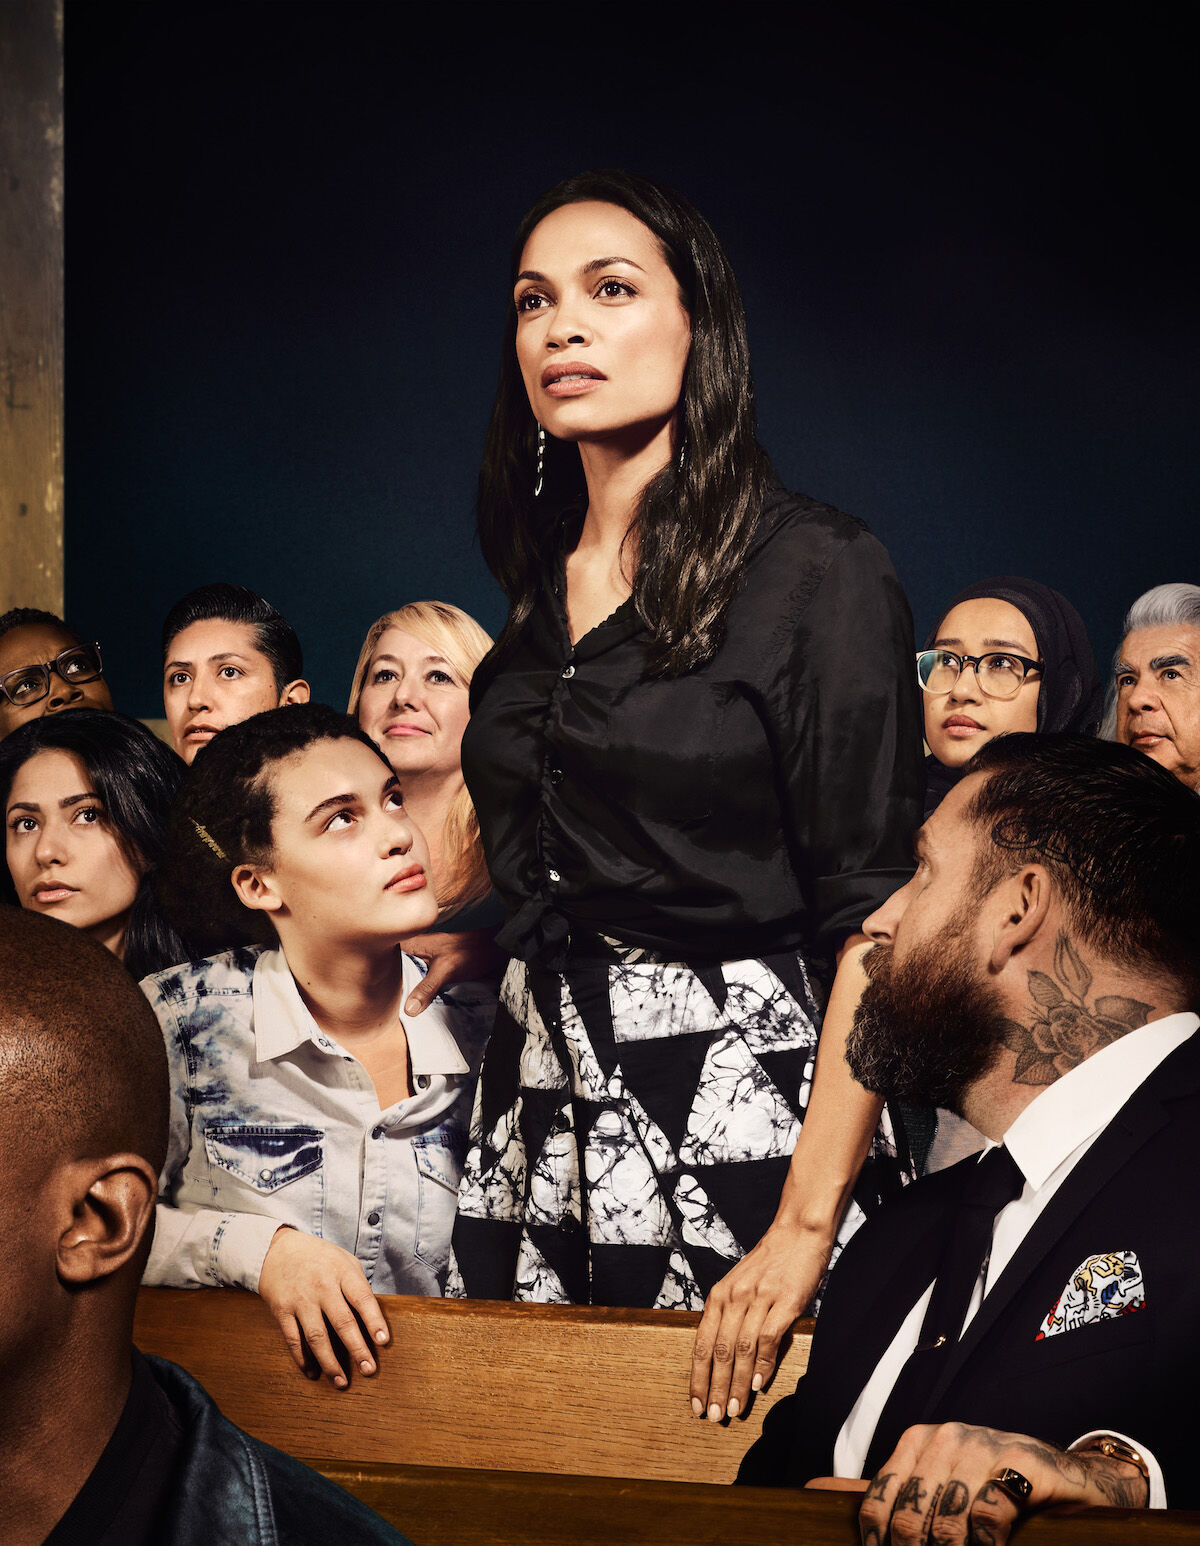 Interpretation of Norman Rockwell's Freedom of Speech by For Freedoms, featuring actor and activist Rosario Dawson (standing). Courtesy For Freedoms.